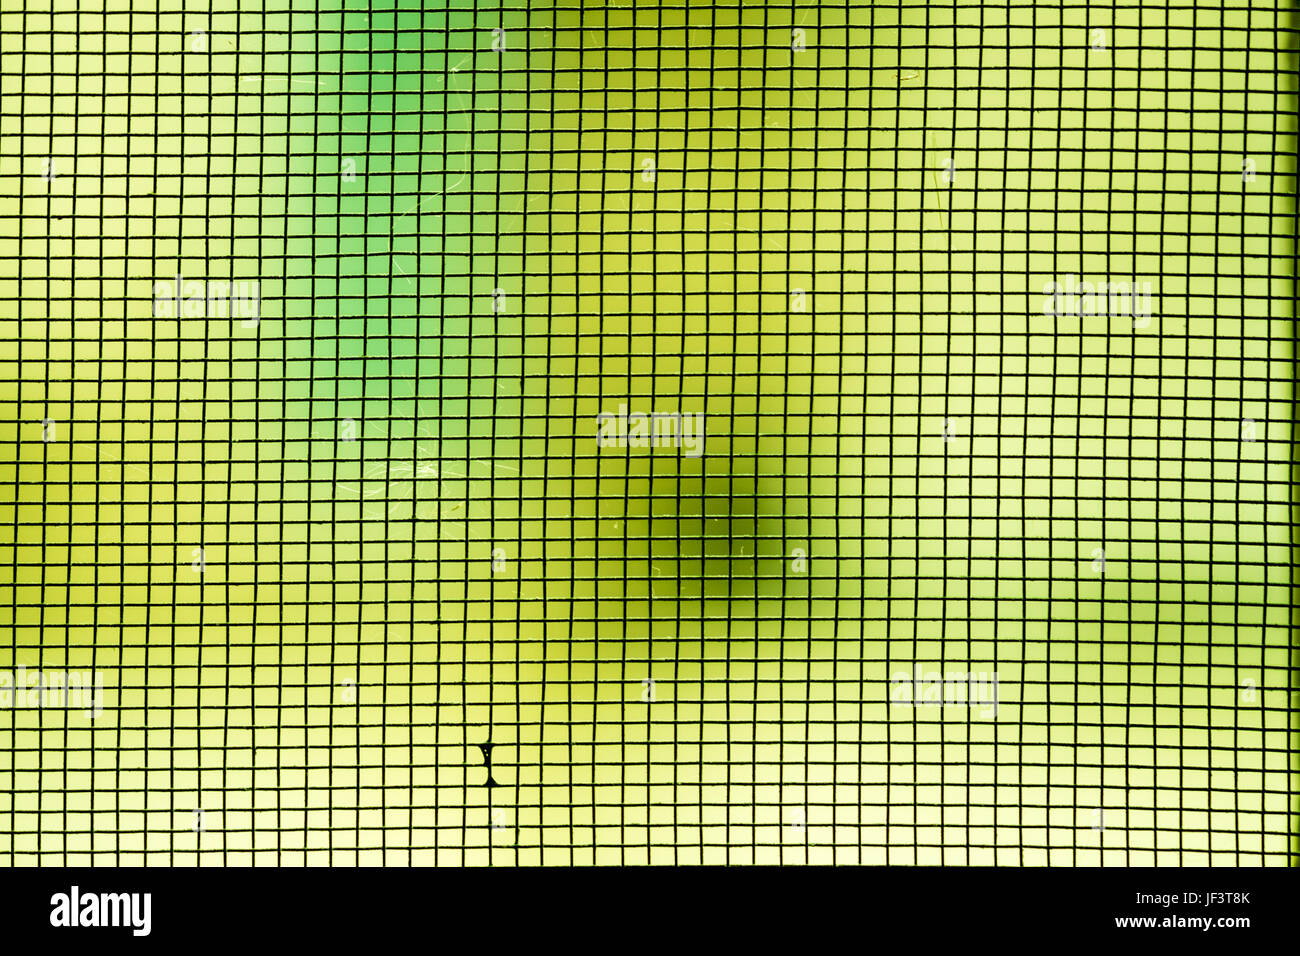 Abstract photo blurred of mosquito wire screen,grid closeup on green background. - Stock Image